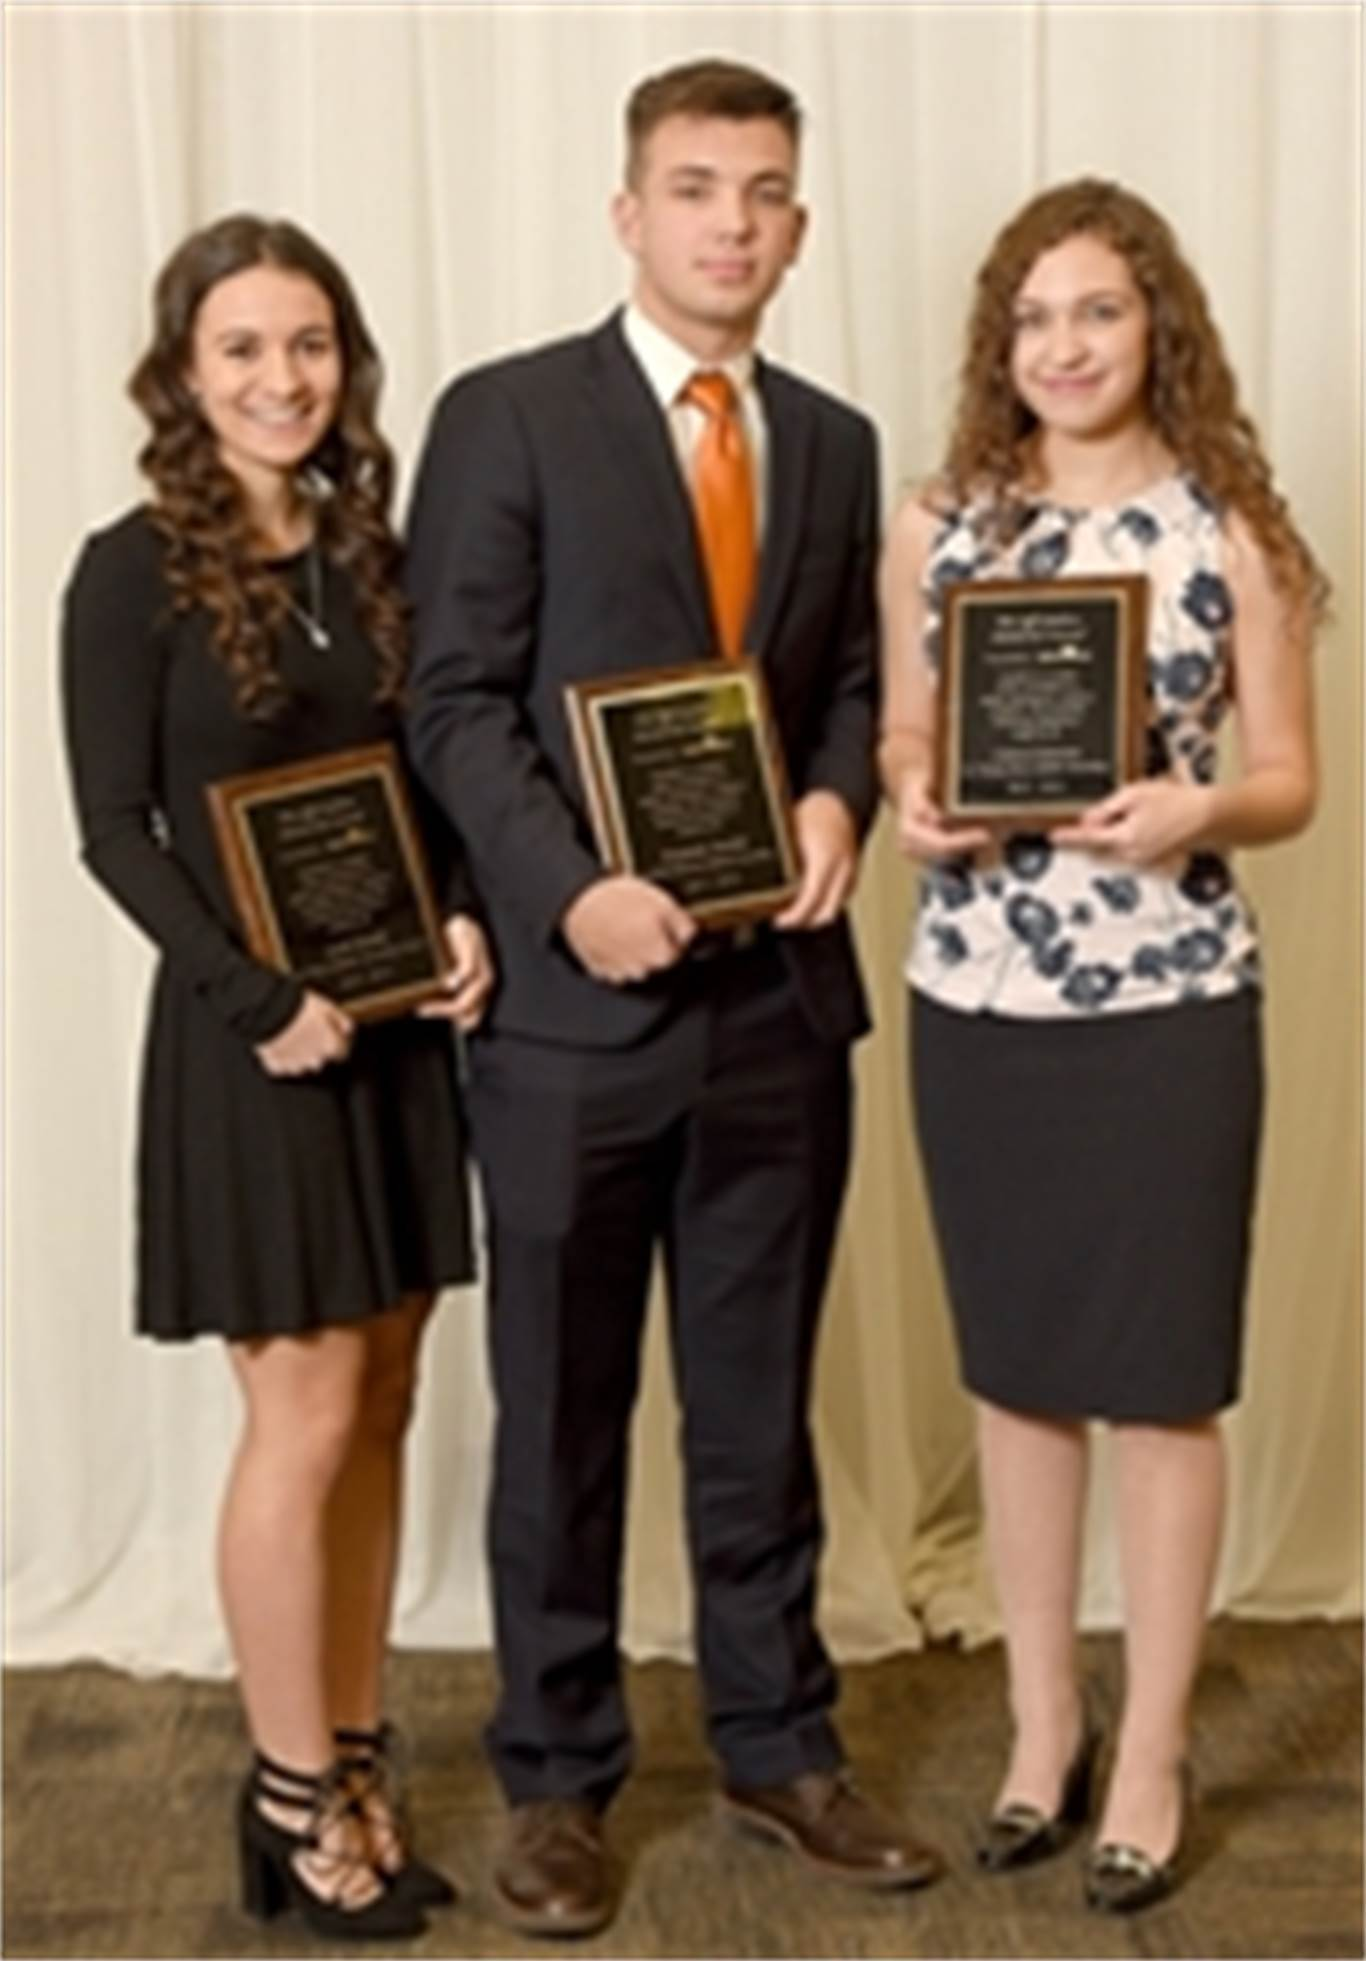 Winners of the 2017 Jeff Dickens Award included, from left to right, Sarah Rotella from St. Mary CSS, Ben Zwolak from Cardinal Newman CSS and Lianna Genovese from St. Thomas More CSS. The Hamilton Spectator is seeking nominations for this year's award.